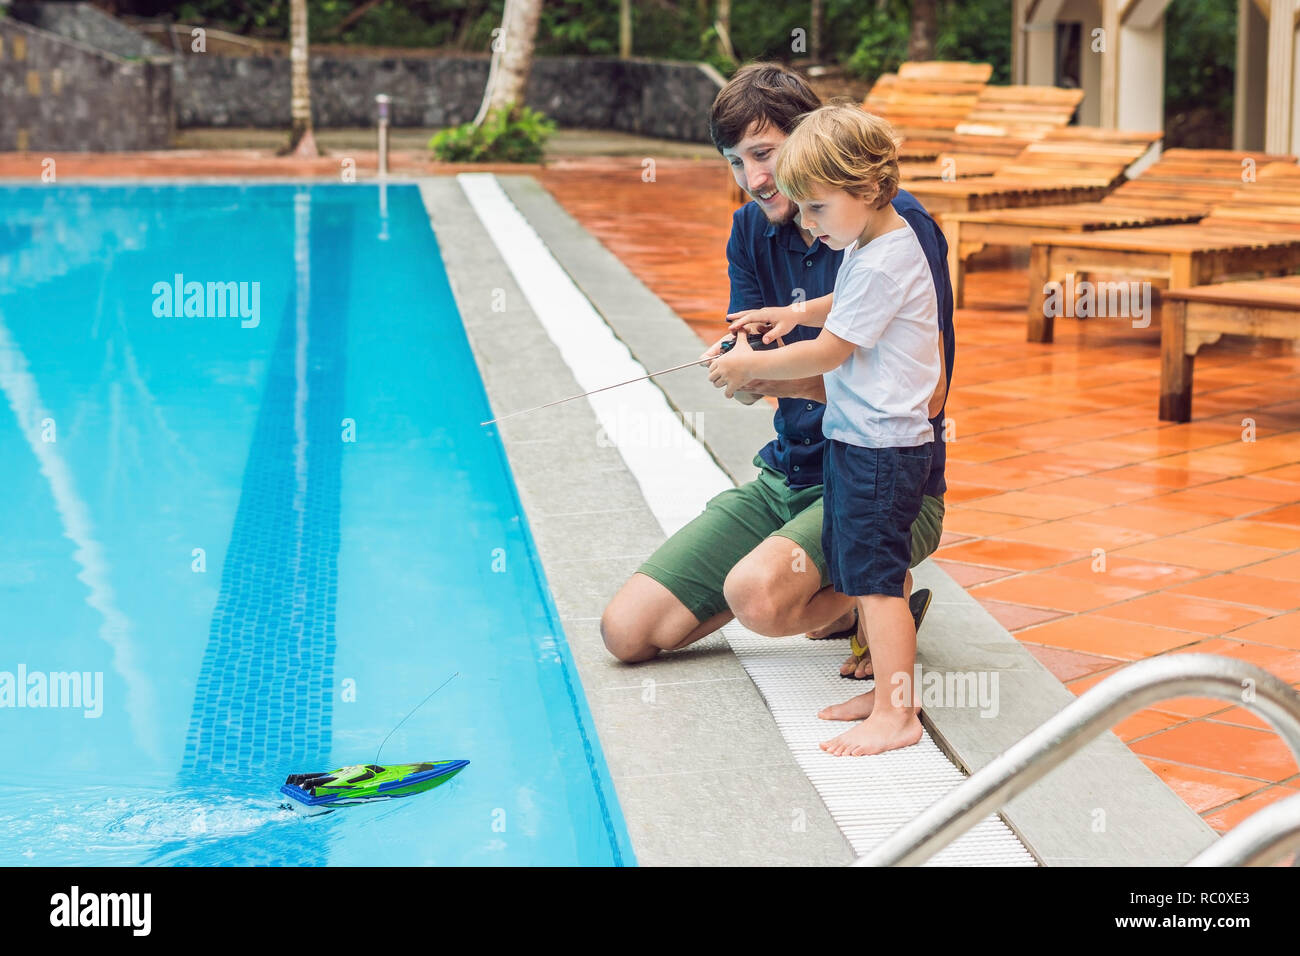 Father and son playing with a remote controlled boat in the pool. - Stock Image